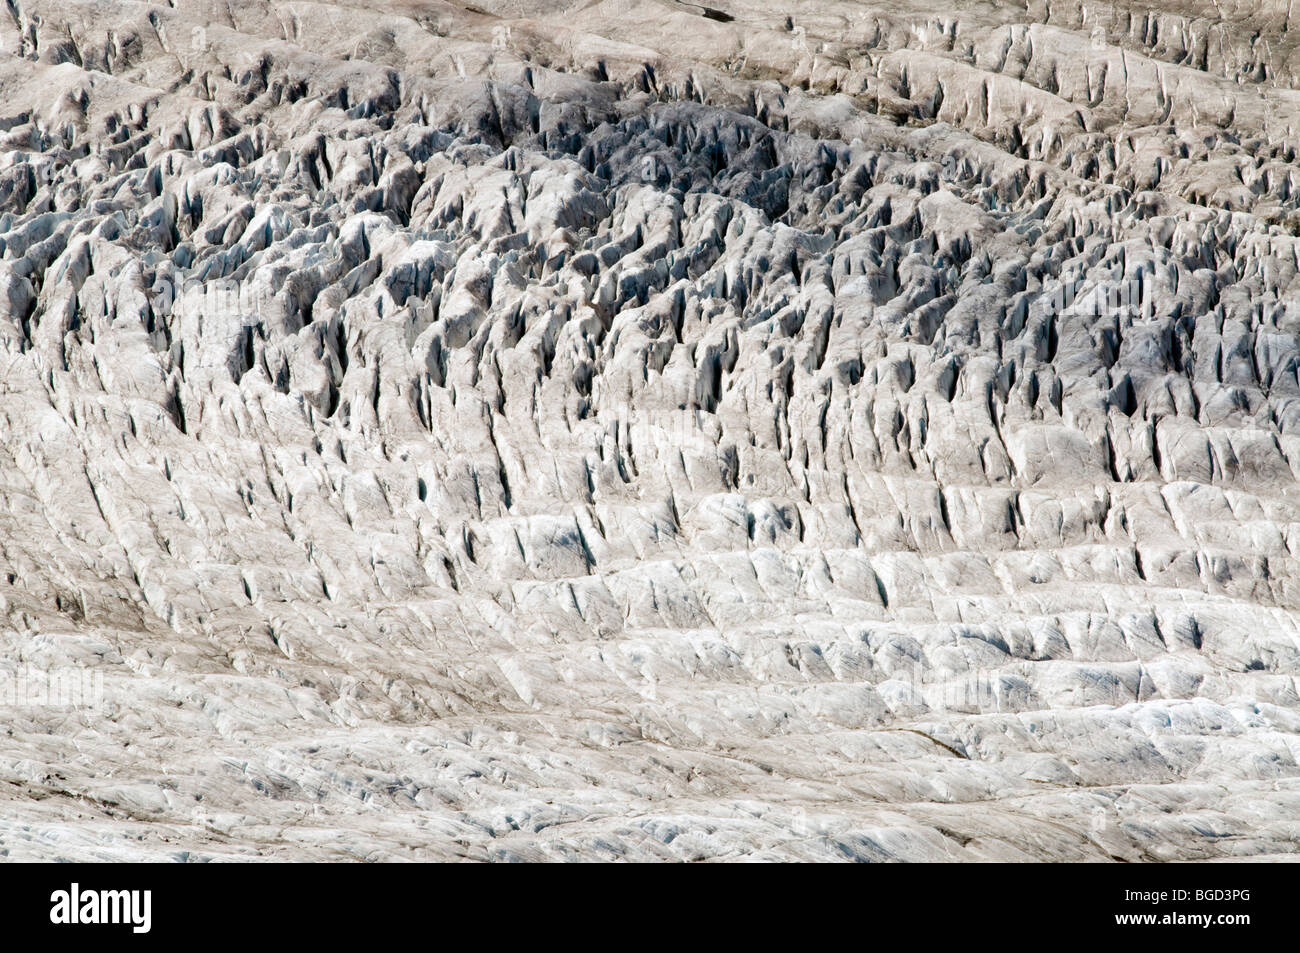 Glacial structures, Aletsch Glacier, Bernese Alps, Valais, Switzerland, Europe Stock Photo